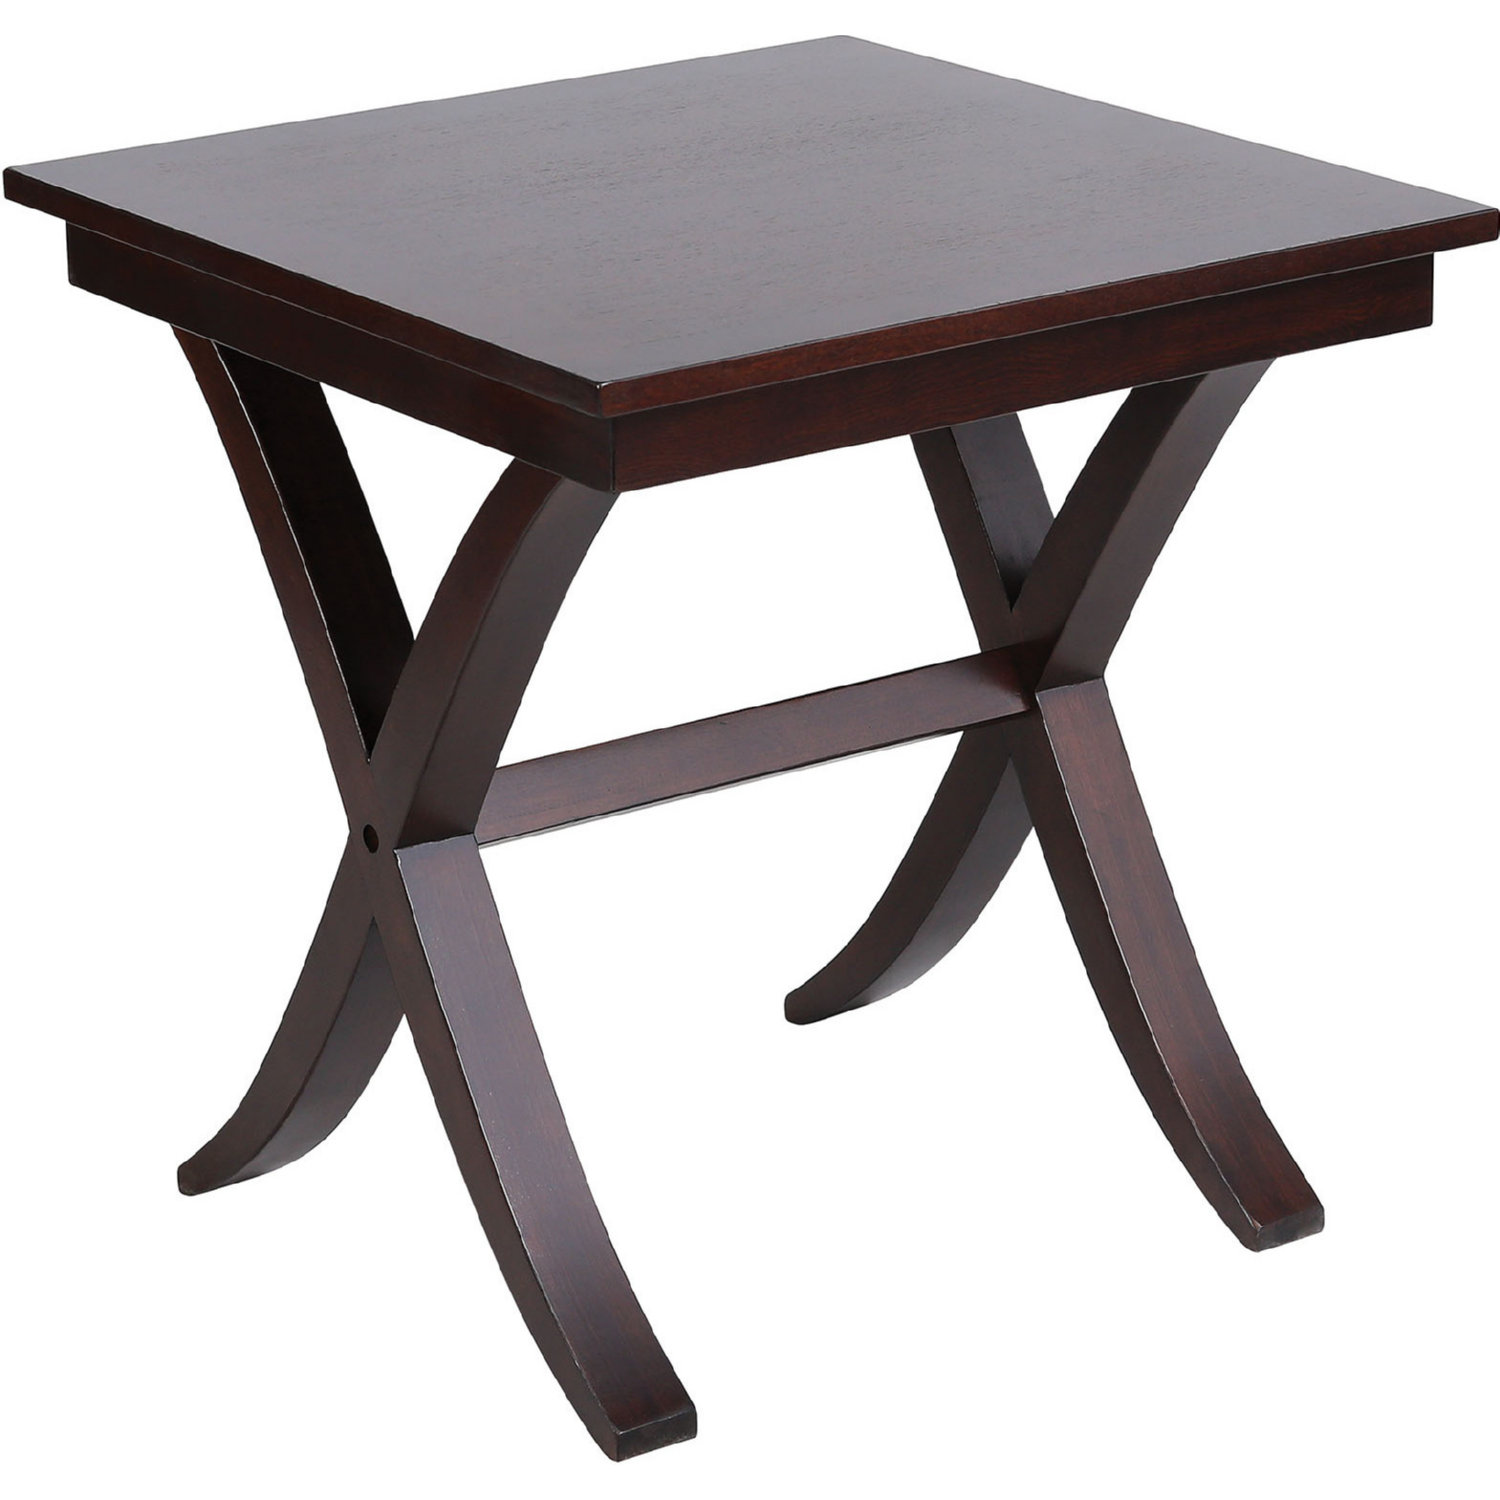 Cool Sadler Metro Side Table In Dark Raisin Finish By Stein World Lamtechconsult Wood Chair Design Ideas Lamtechconsultcom